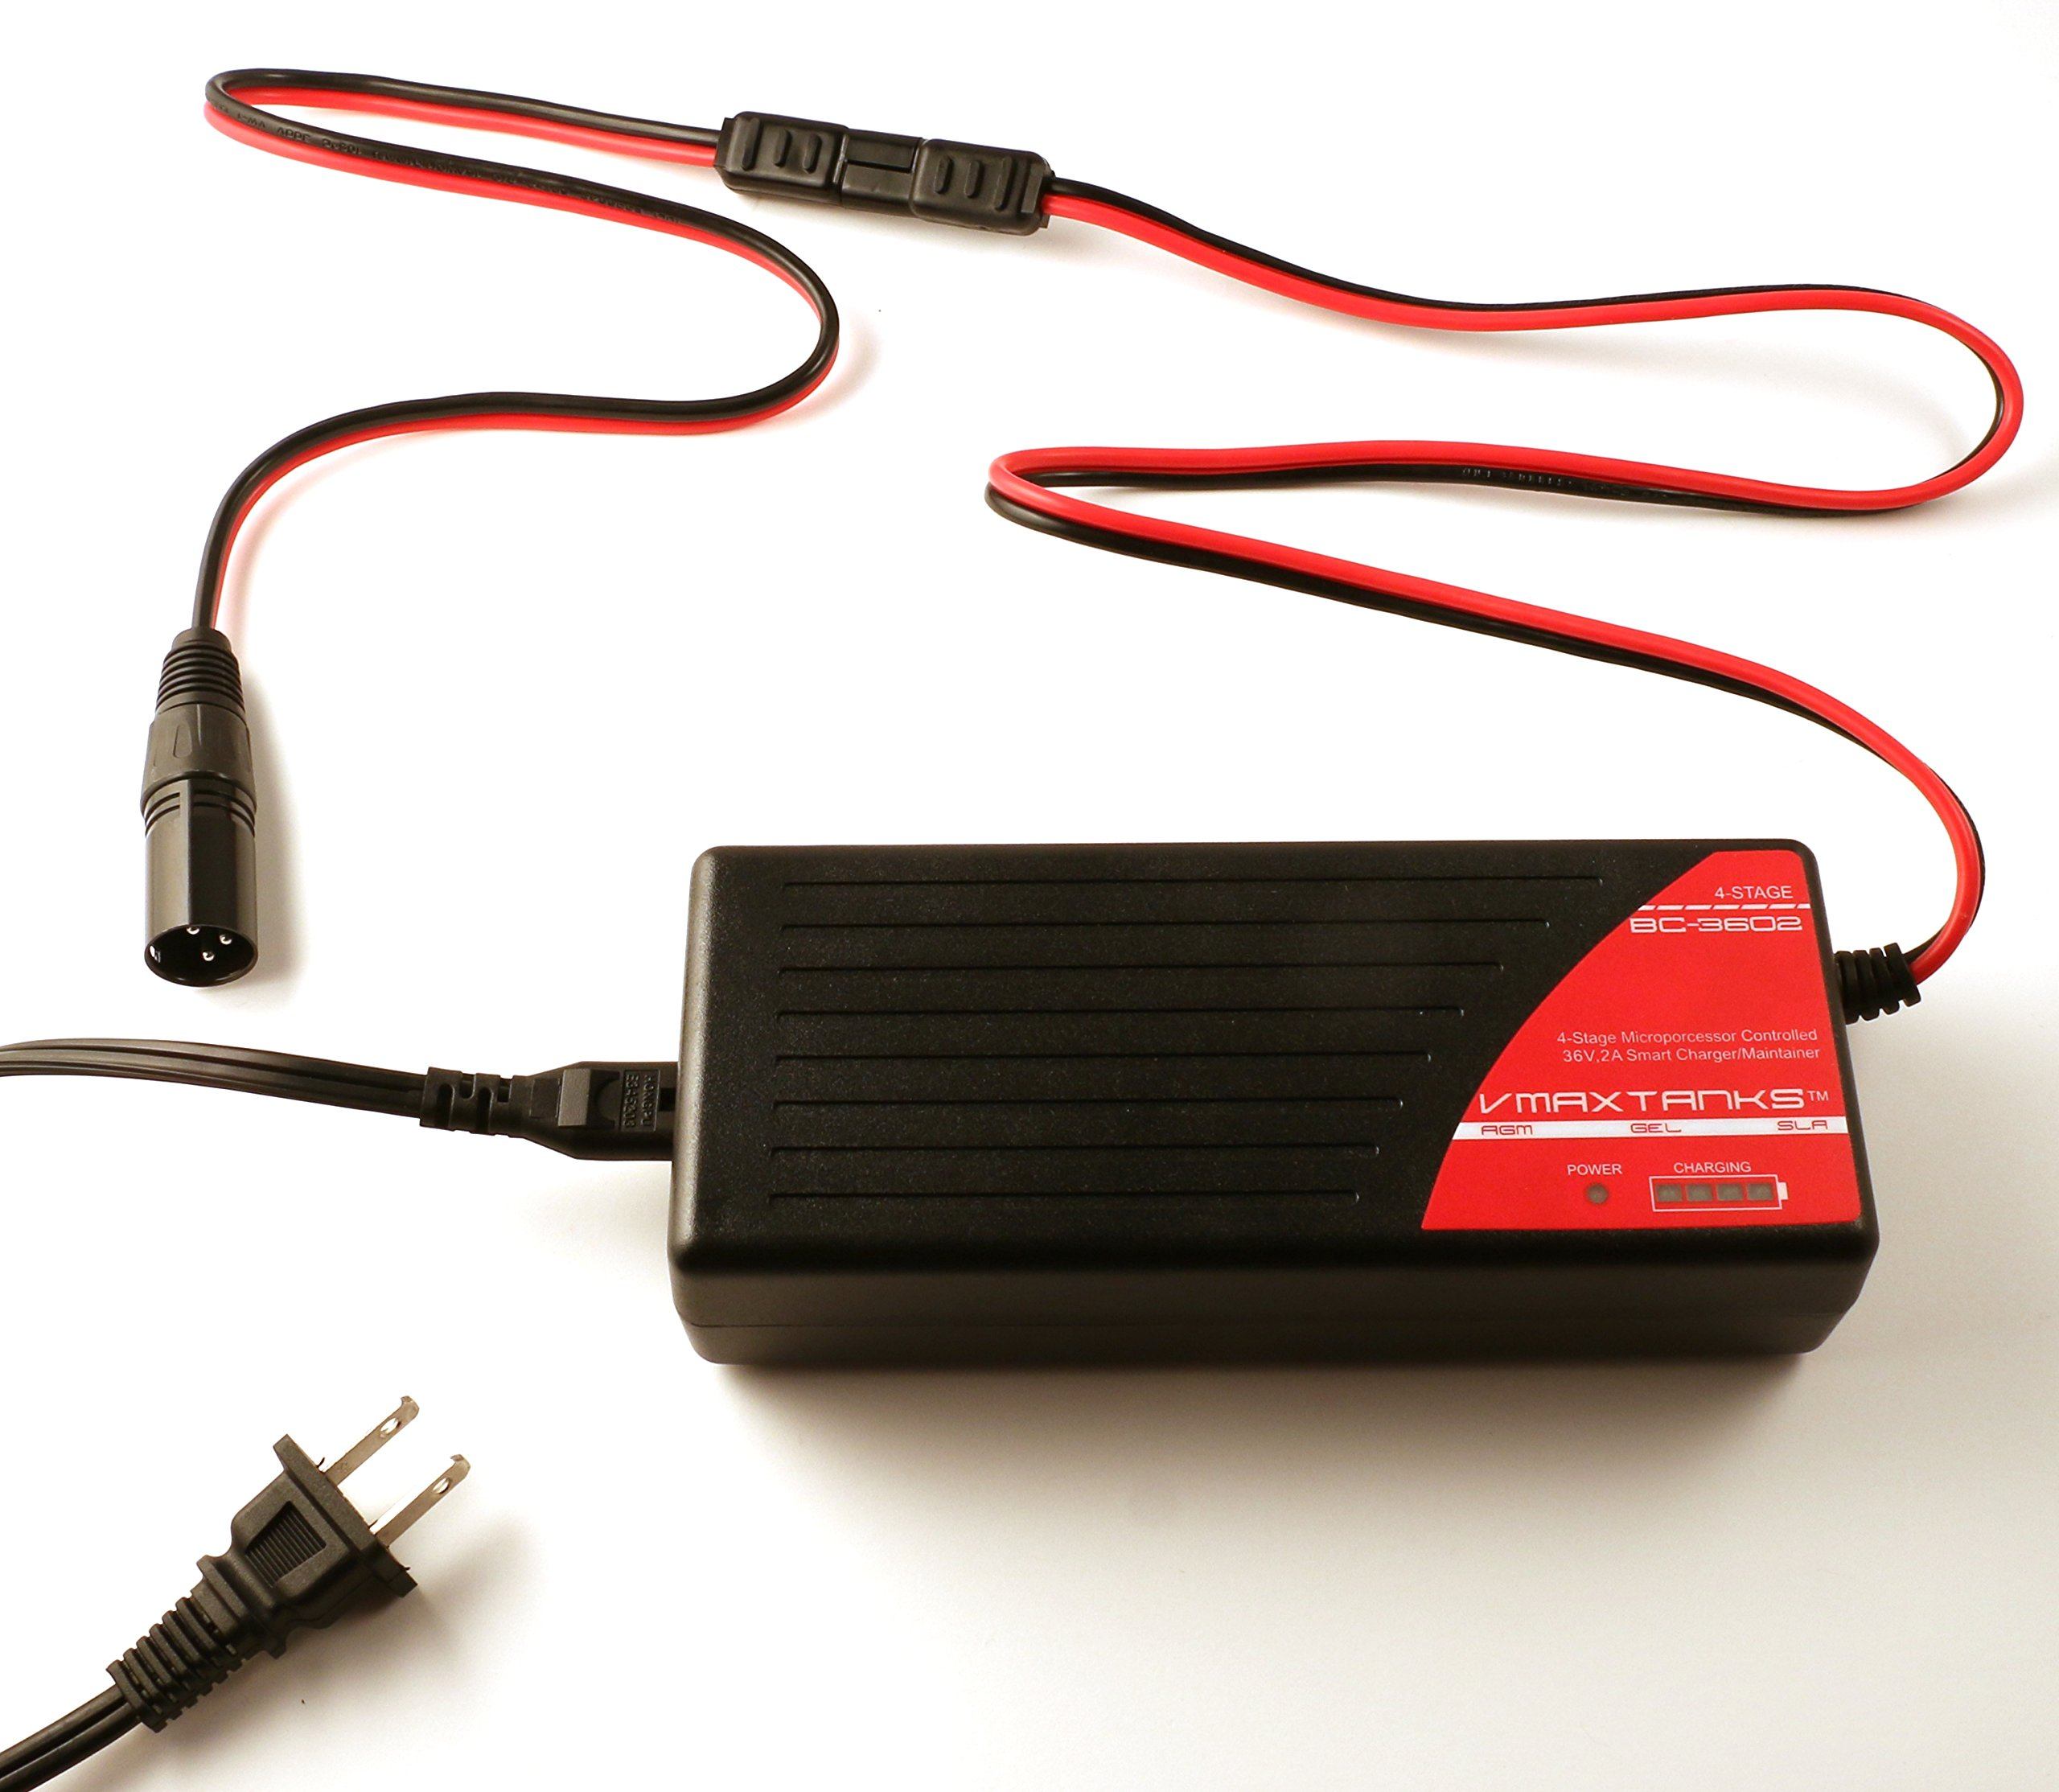 BC3602 + XLR 3 Pin Male Connector: VMAX BC3602 36V 2 Amp 4-Stage Smart Battery Charger and Maintainer